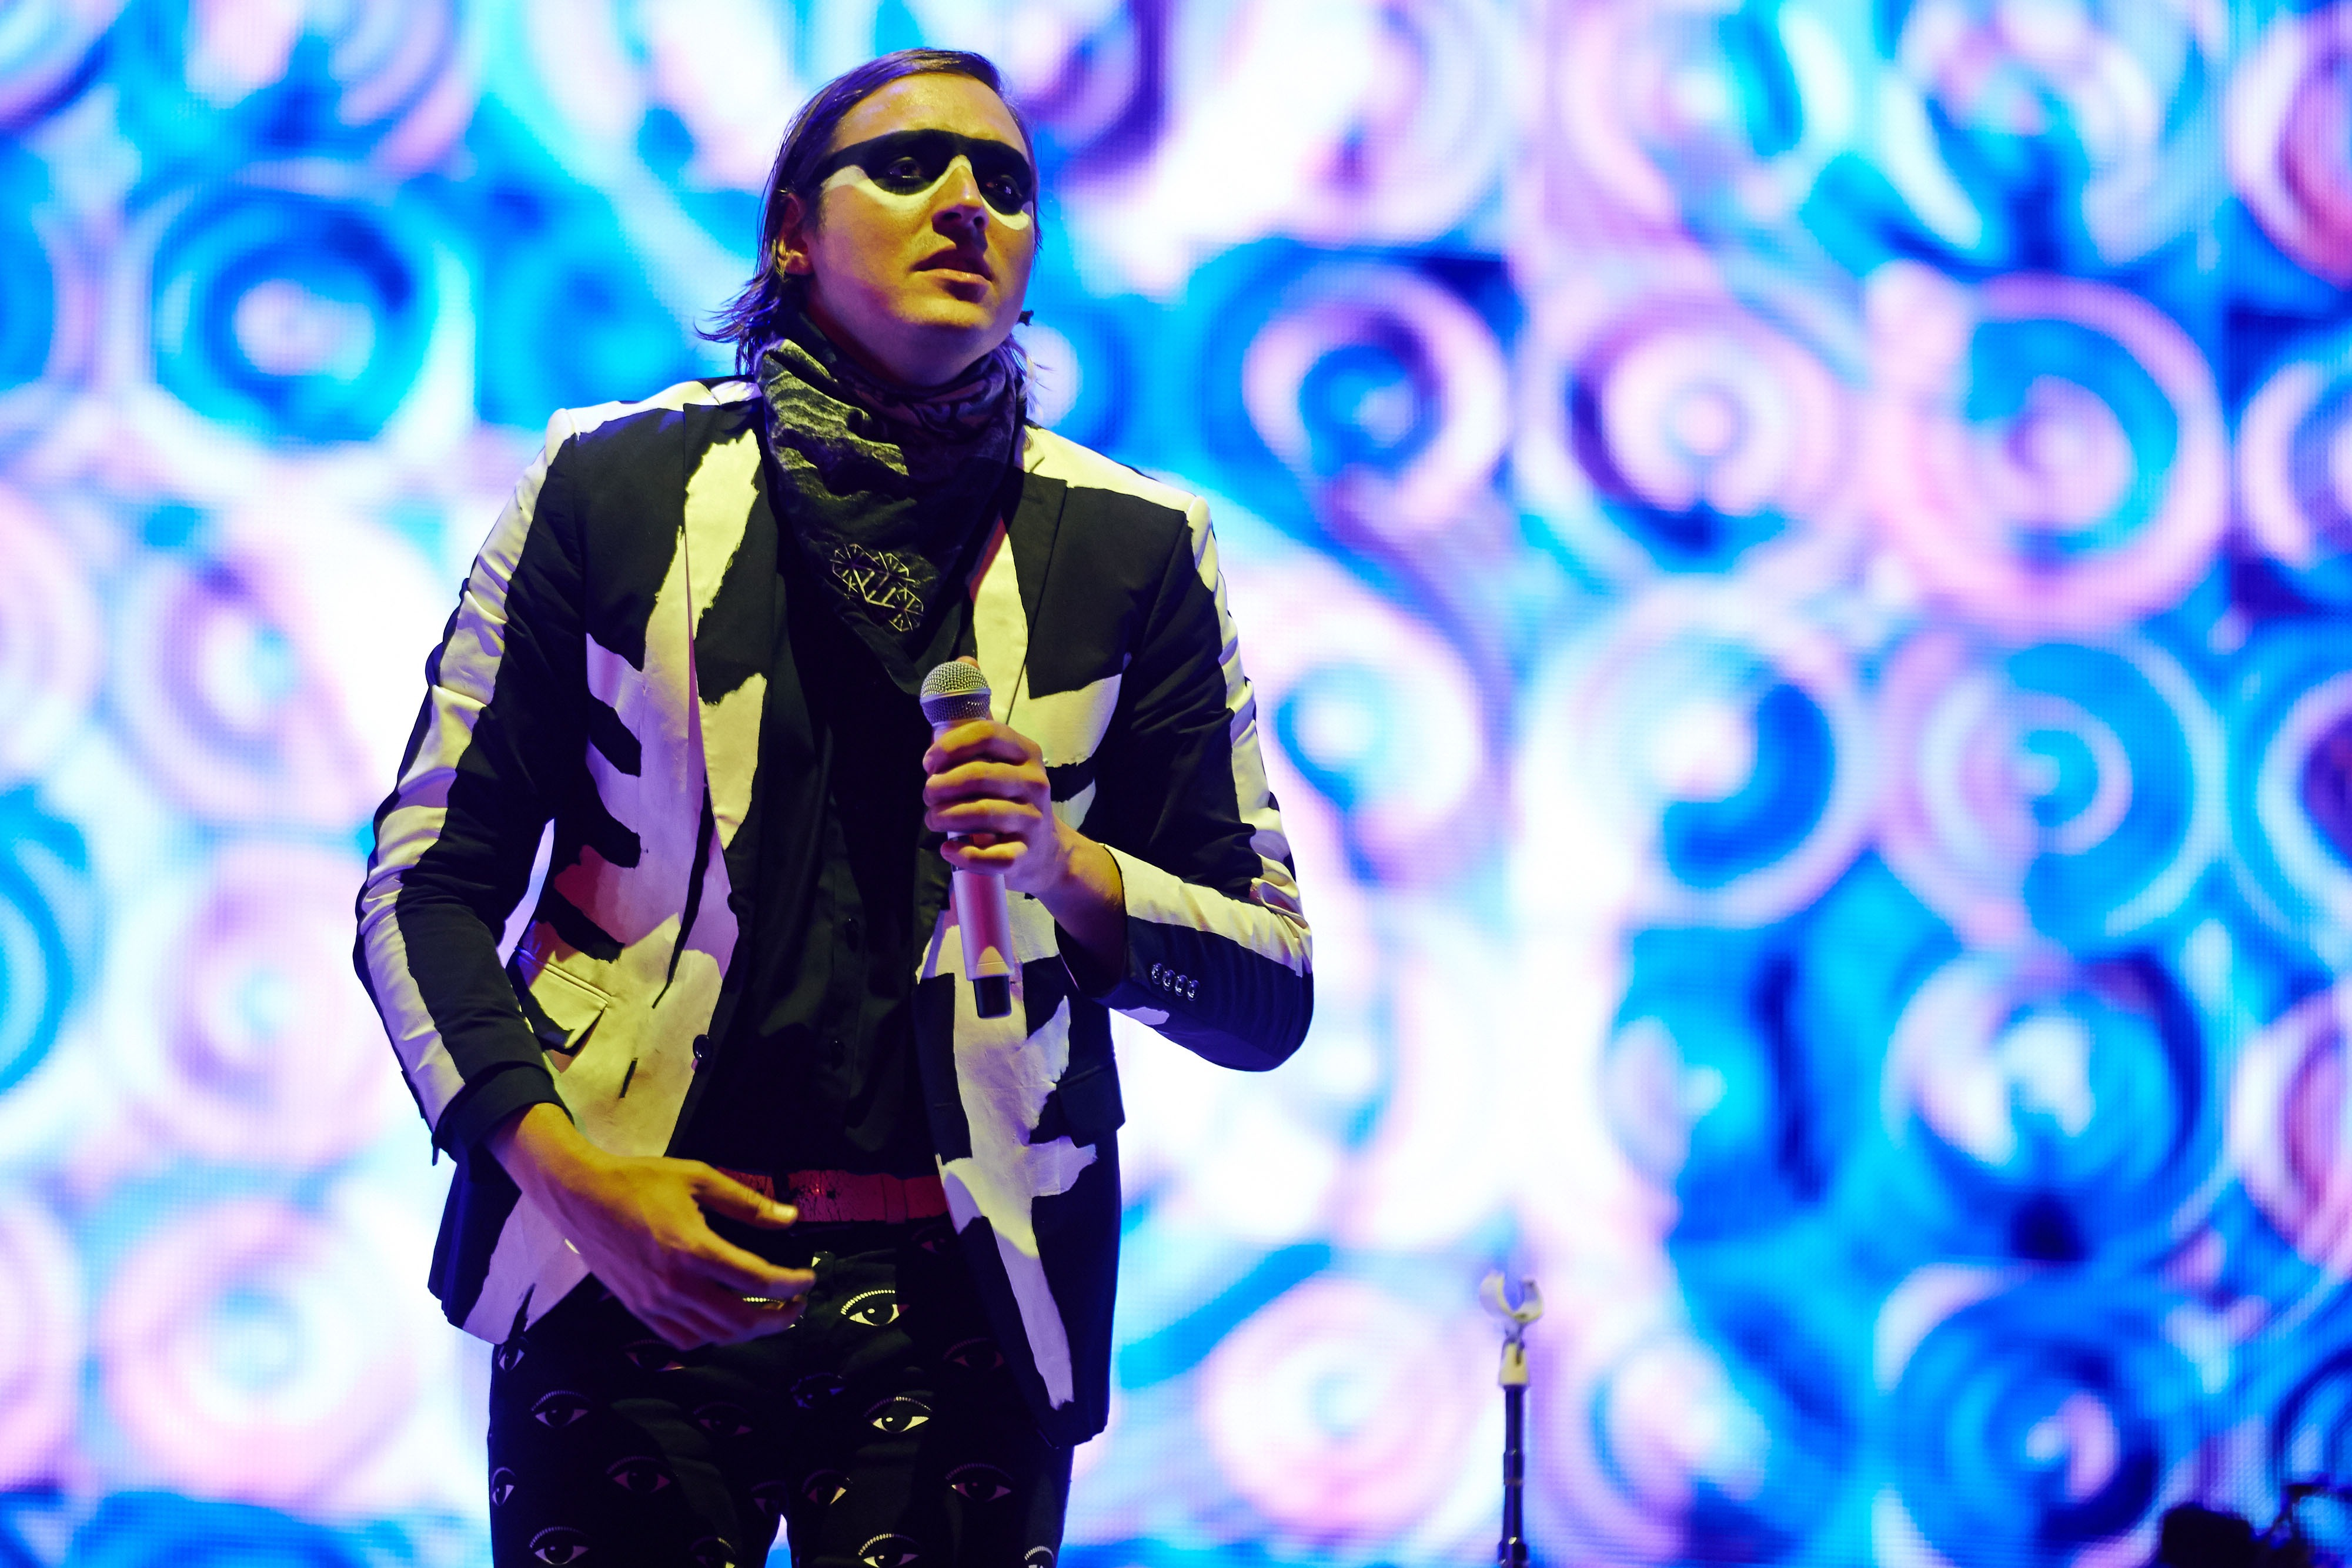 GLASTONBURY, UNITED KINGDOM - JUNE 27: Win Butler of Arcade Fire performs on Day 1 of the Glastonbury Festival at Worthy Farm